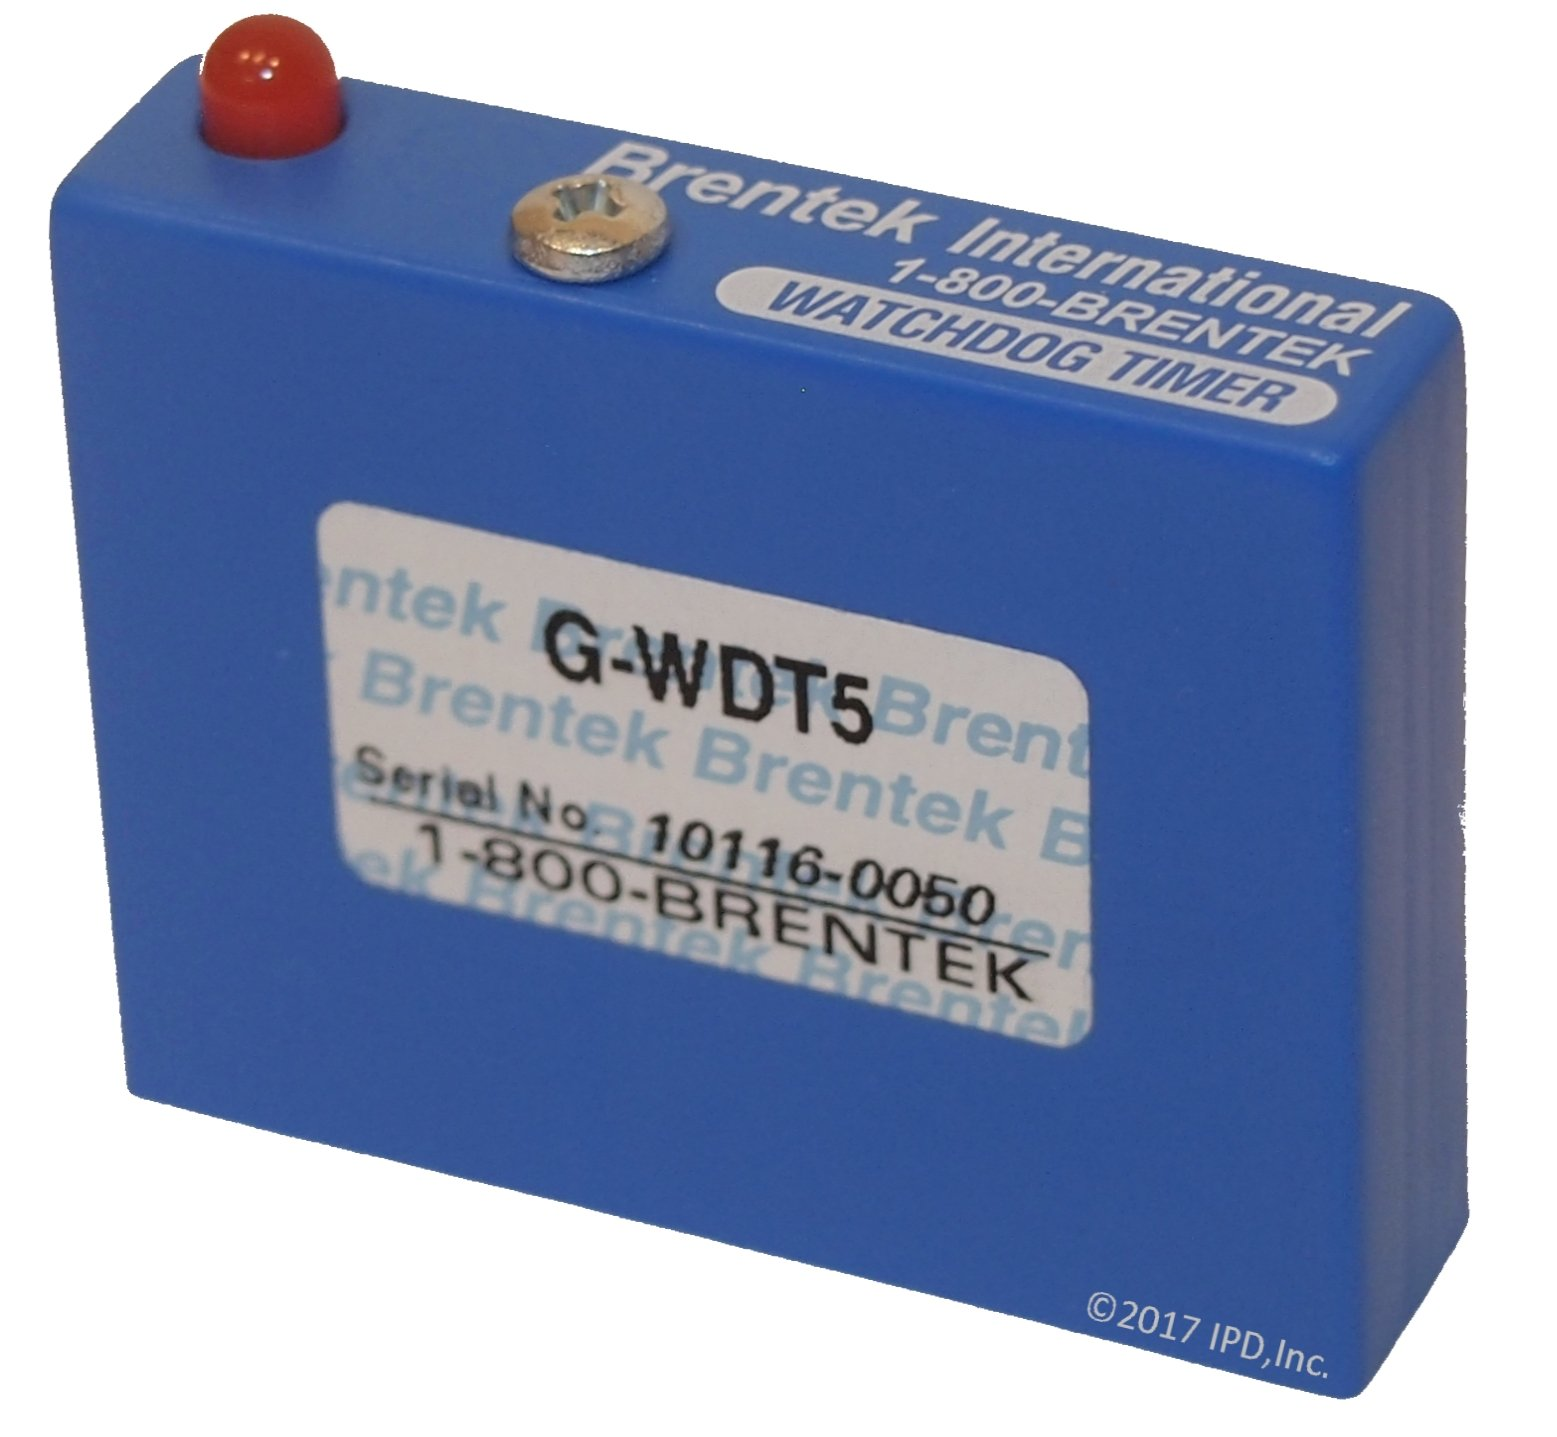 Watchdog Timer - Brentek G-WDT5 - 2 second Fixed Timeout, Opto 22 G4 Case Size